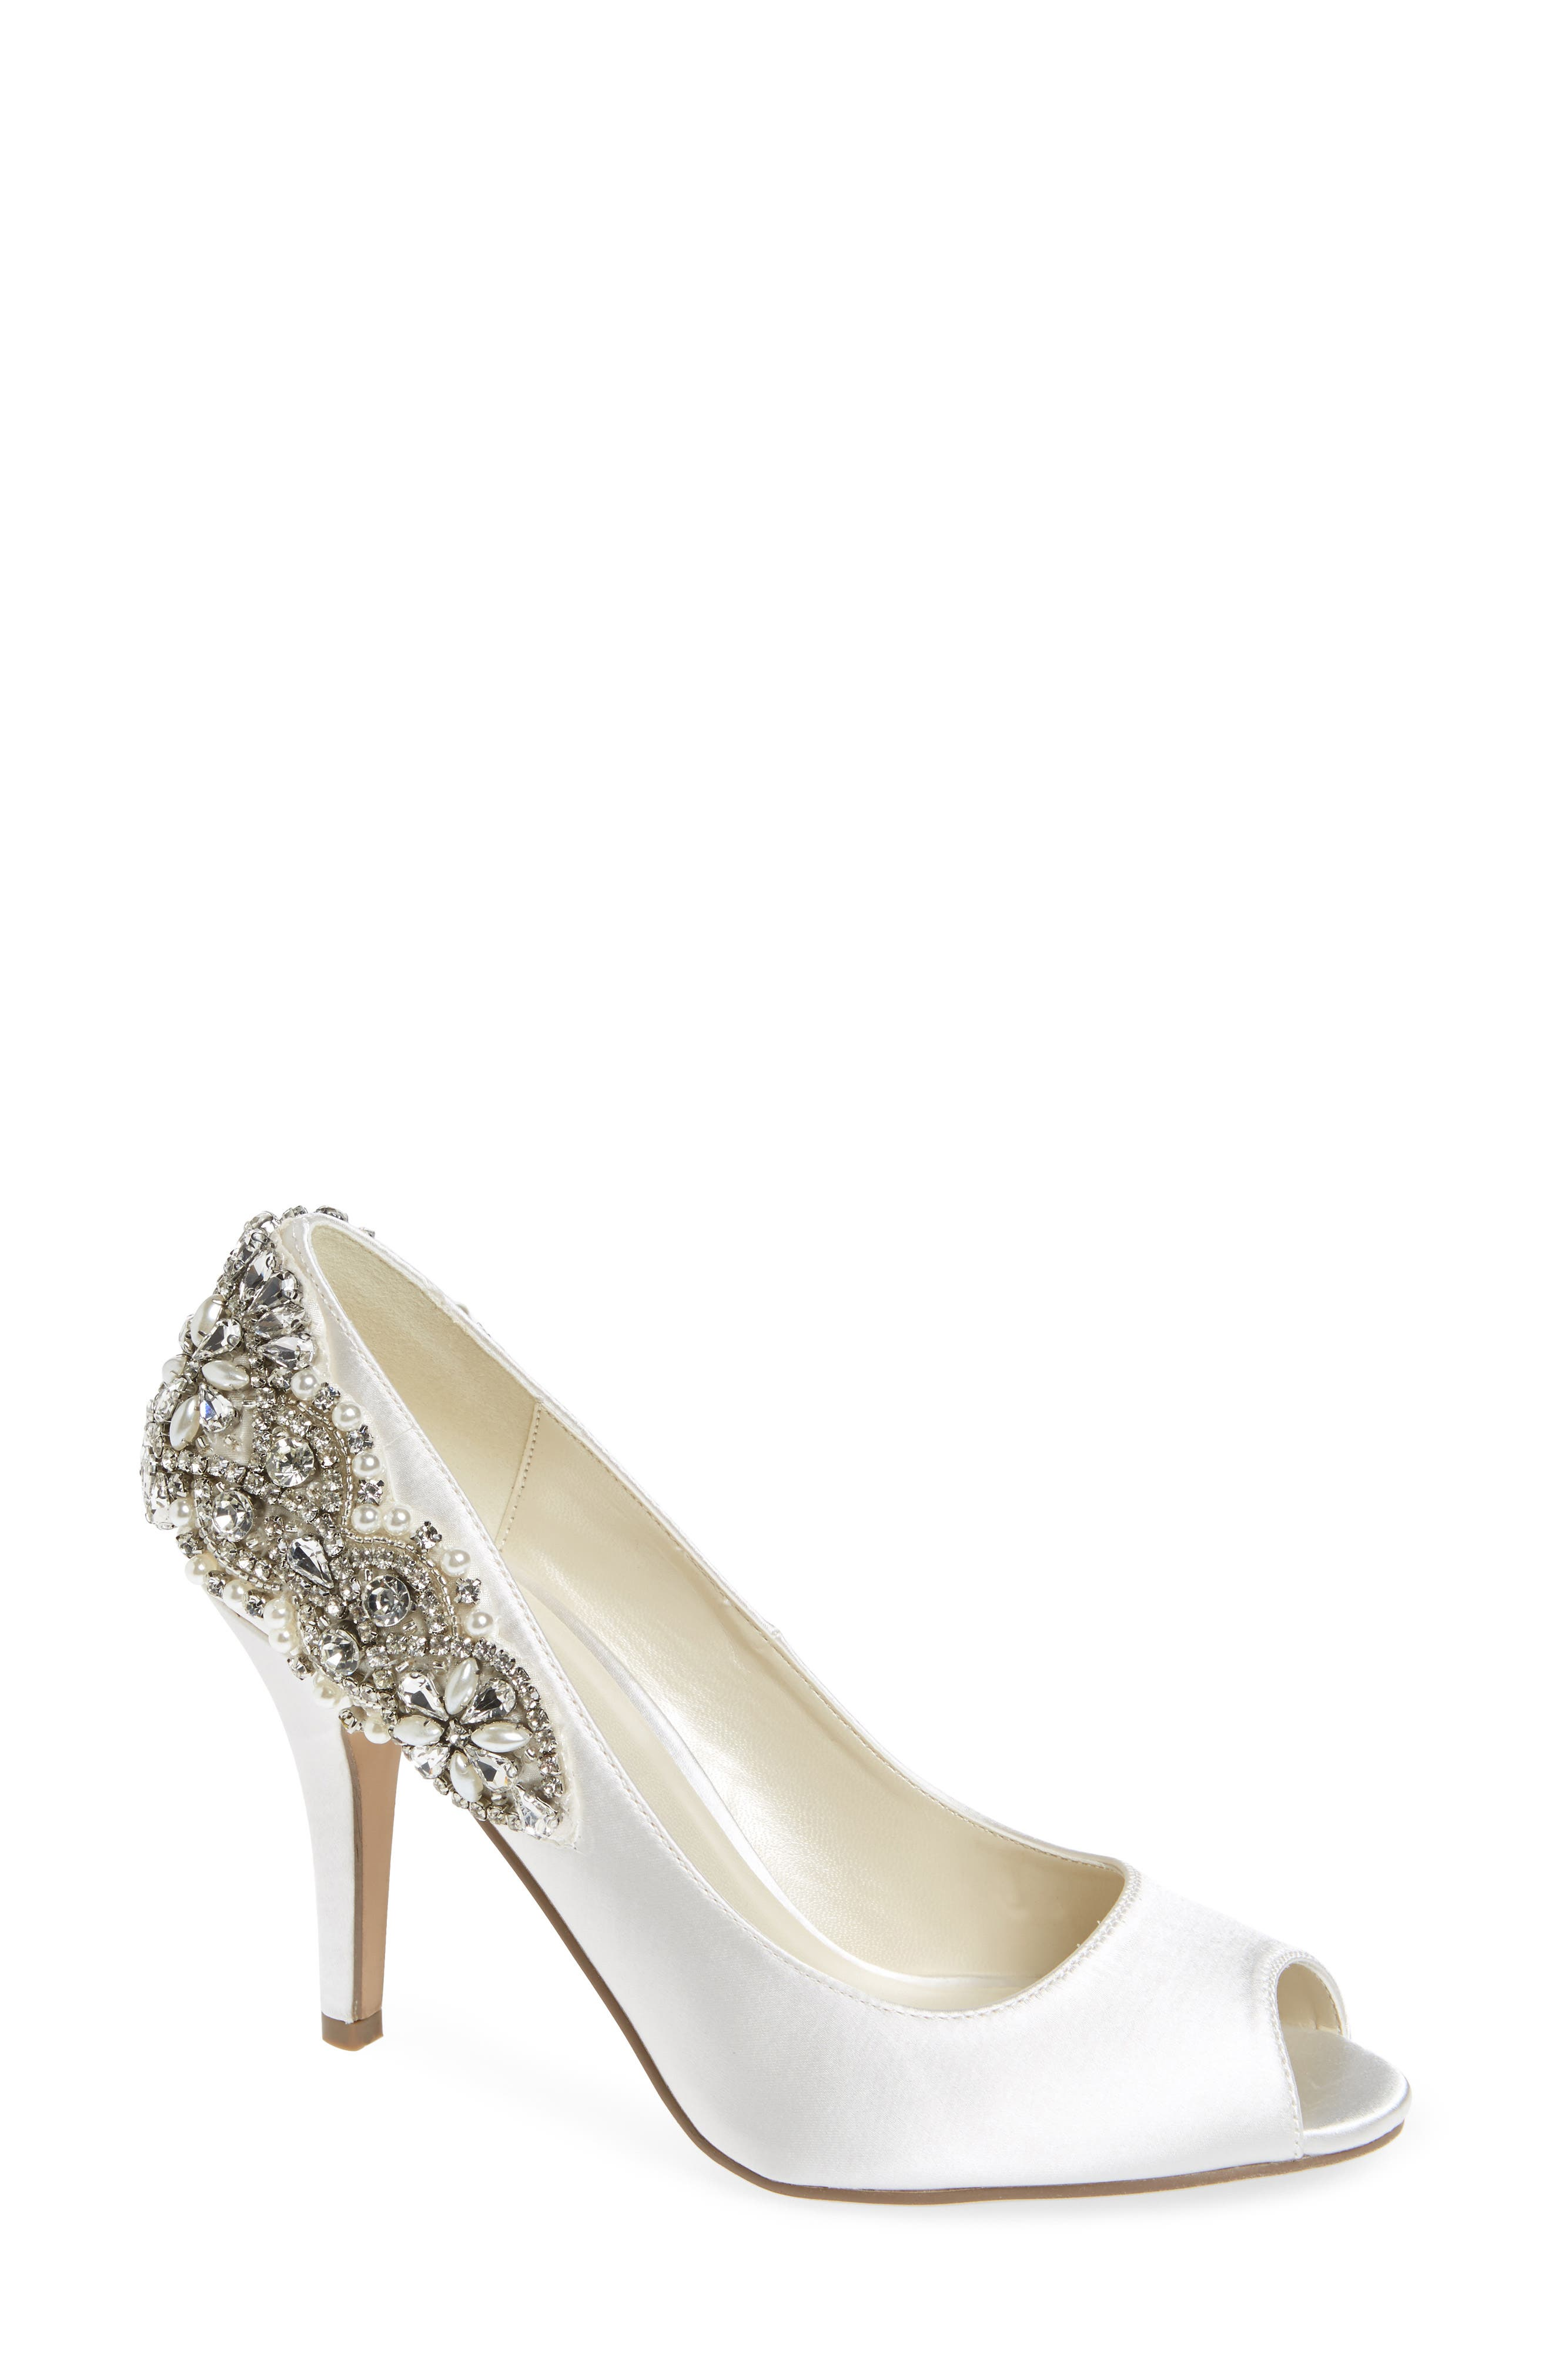 Cynthia Embellished Pump,                             Main thumbnail 1, color,                             IVORY SATIN